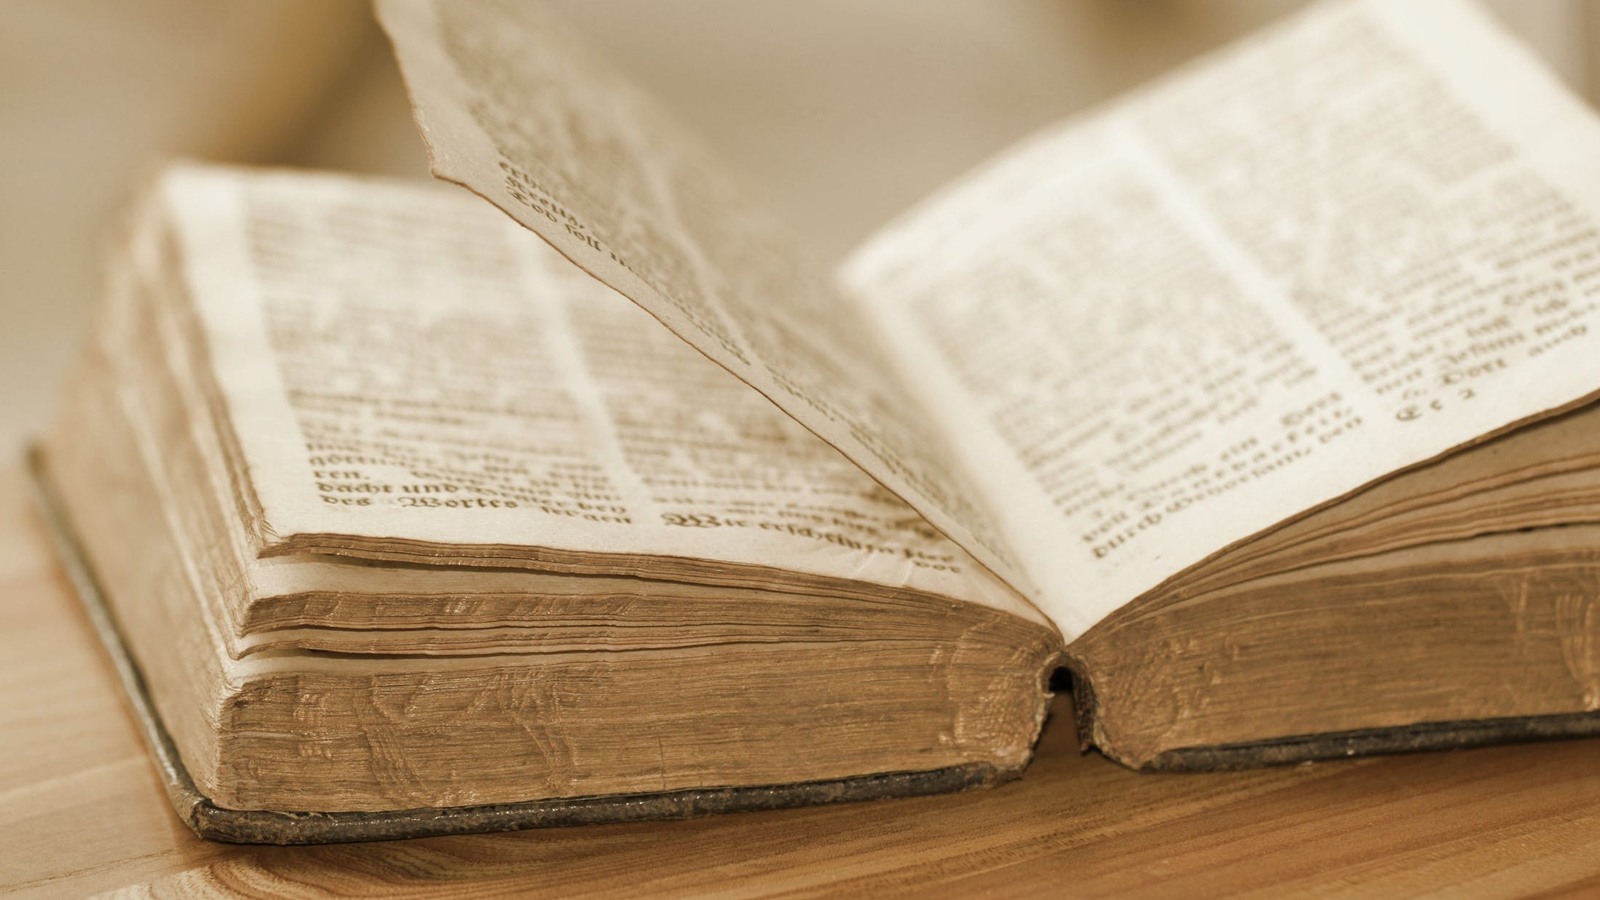 Why Shouldn't We Trust The Non-Canonical Gospels Attributed To Thomas